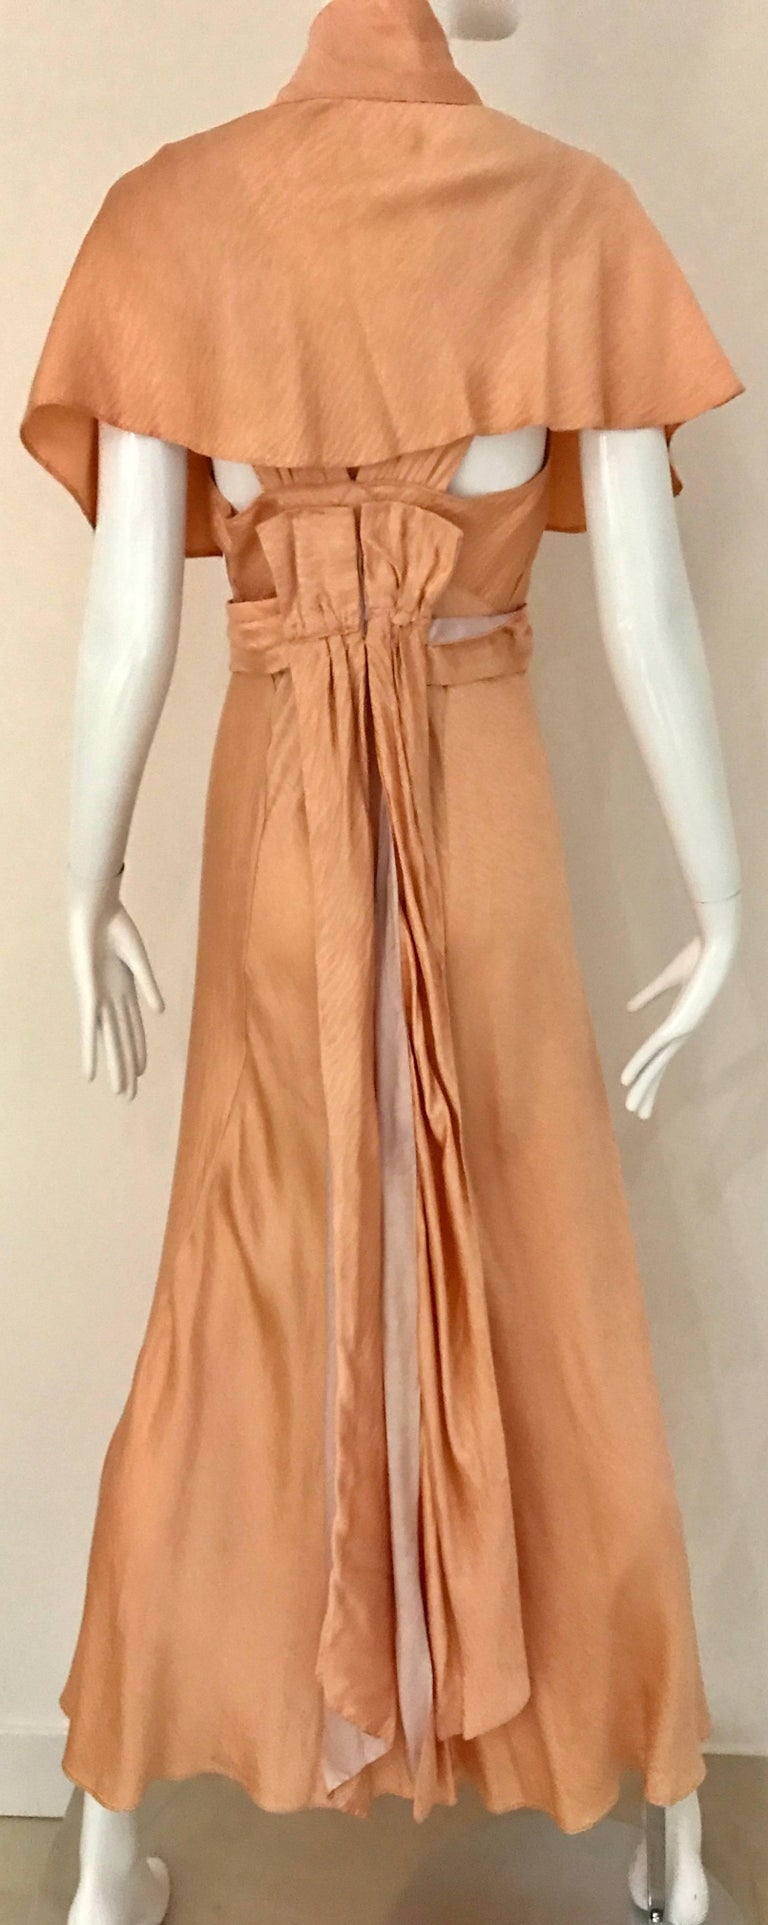 1930s Peach Silk Bias Cut Dress with Shawl Capelet  In Good Condition For Sale In Beverly Hills, CA